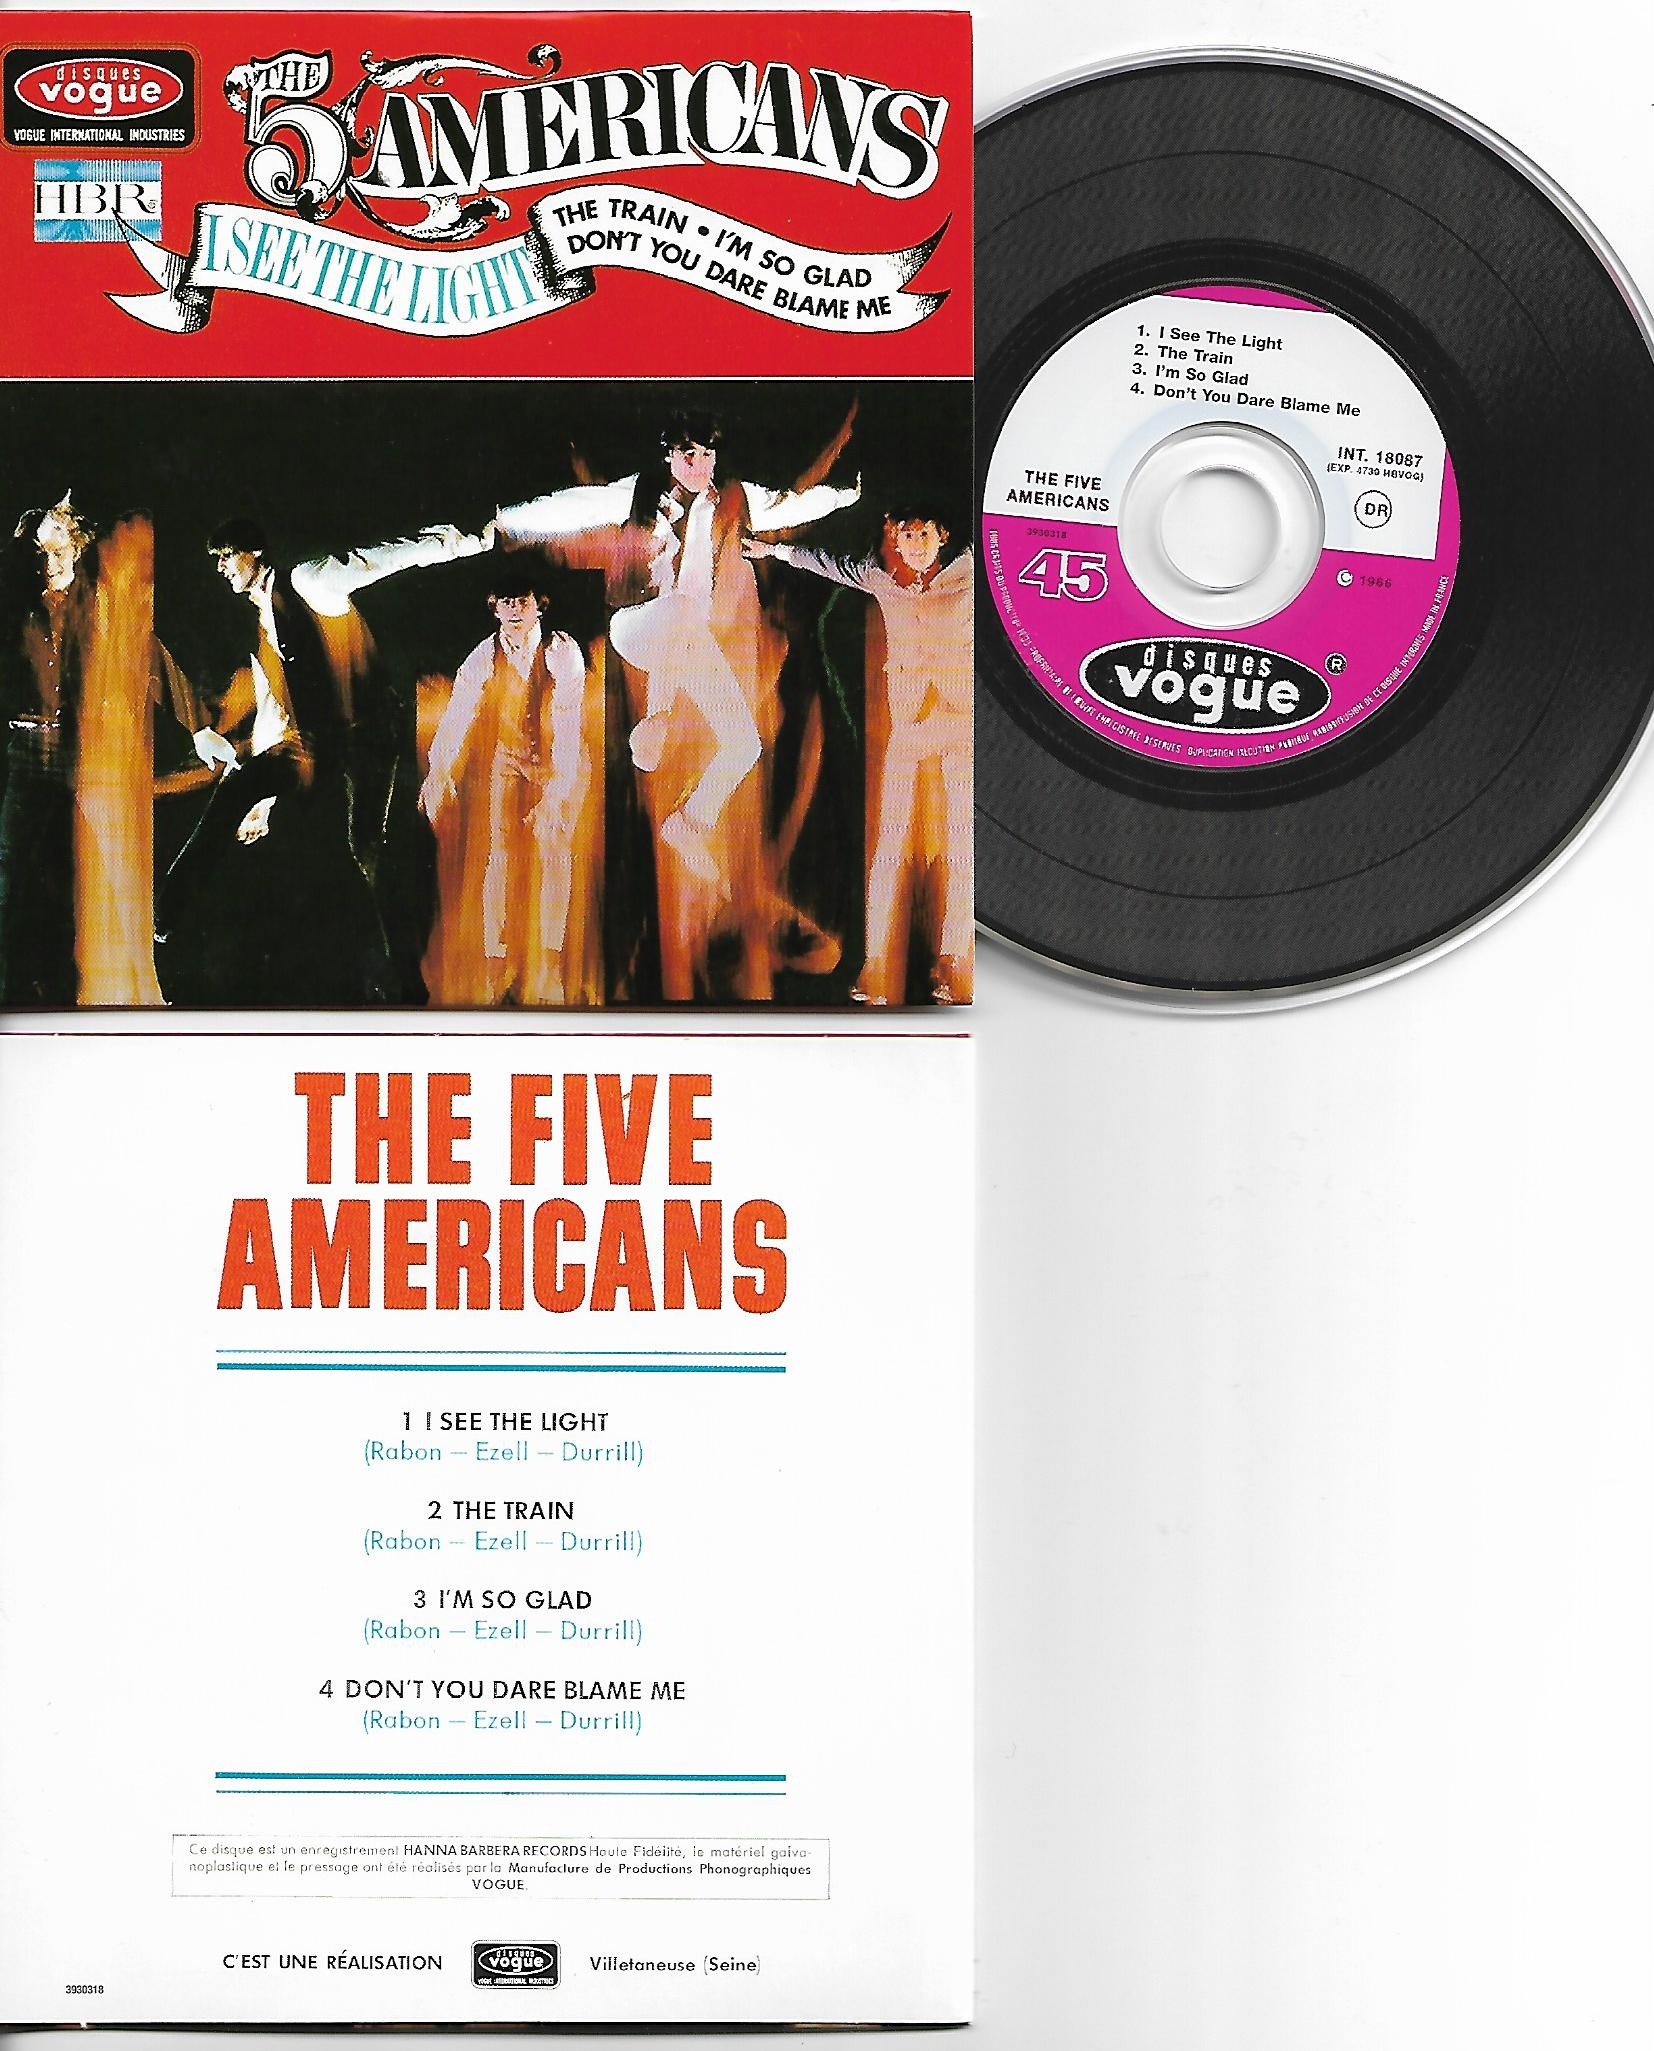 THE FIVE AMERICANS - I see the light - EP - 4-track CARD SLEEVE - French sleeve - Very Limited Edition - CD single